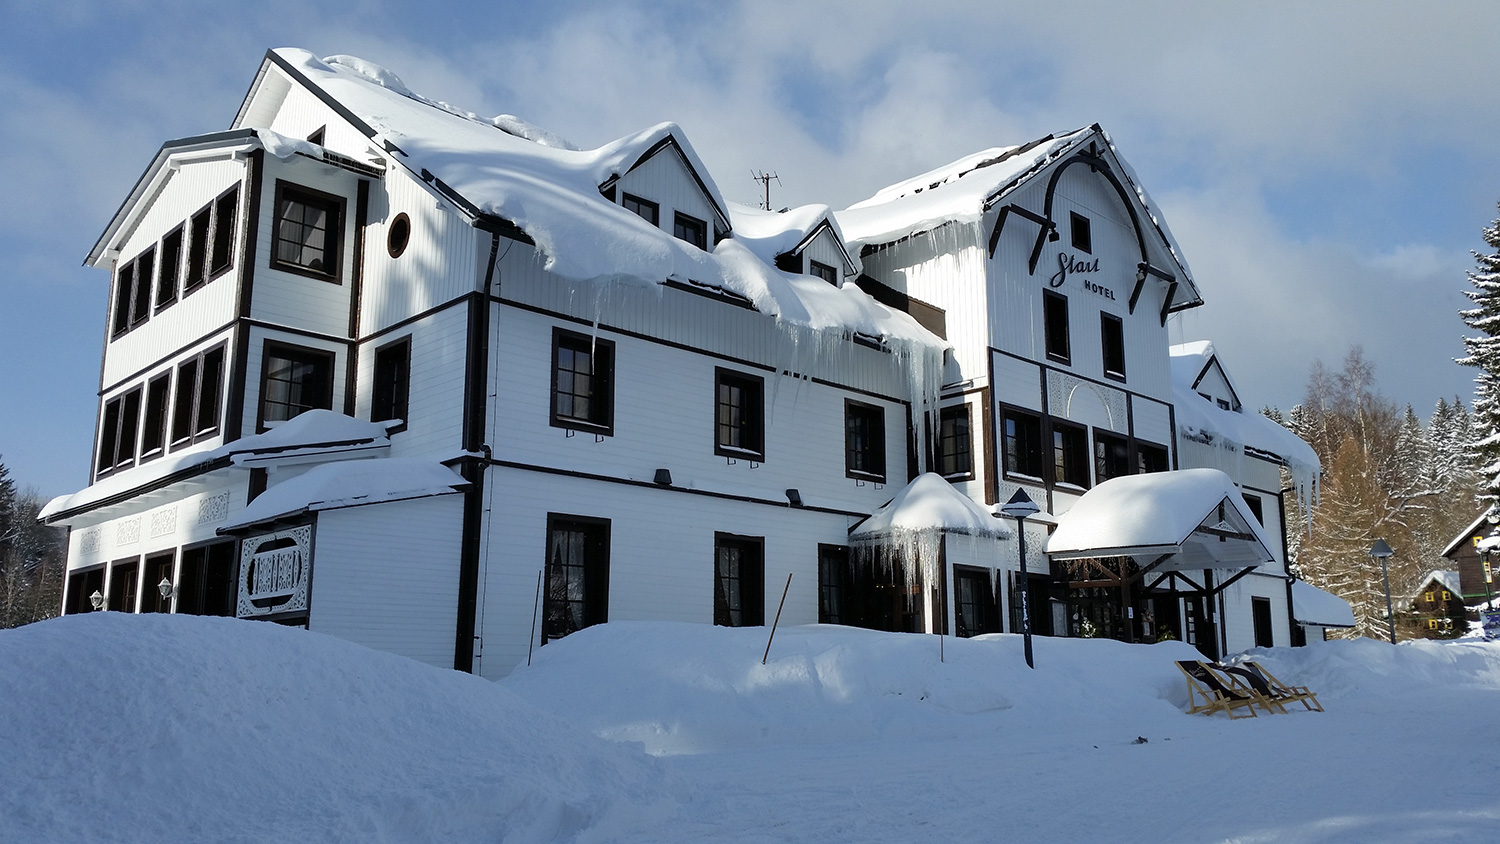 Small charming hotels for Charming hotels